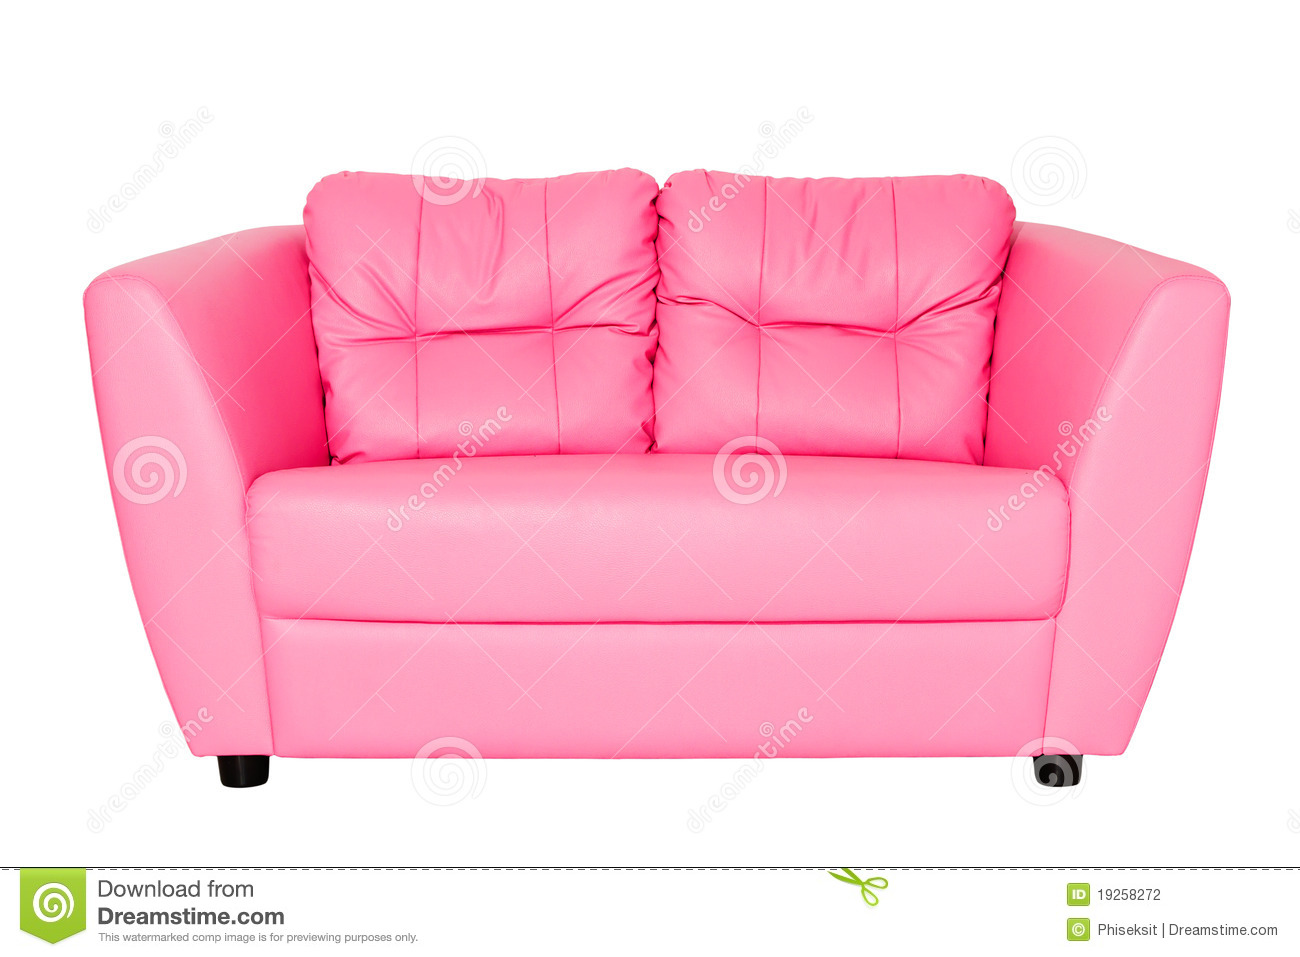 pink sofa stock photo image of isolated page fashionable 19258272. Black Bedroom Furniture Sets. Home Design Ideas